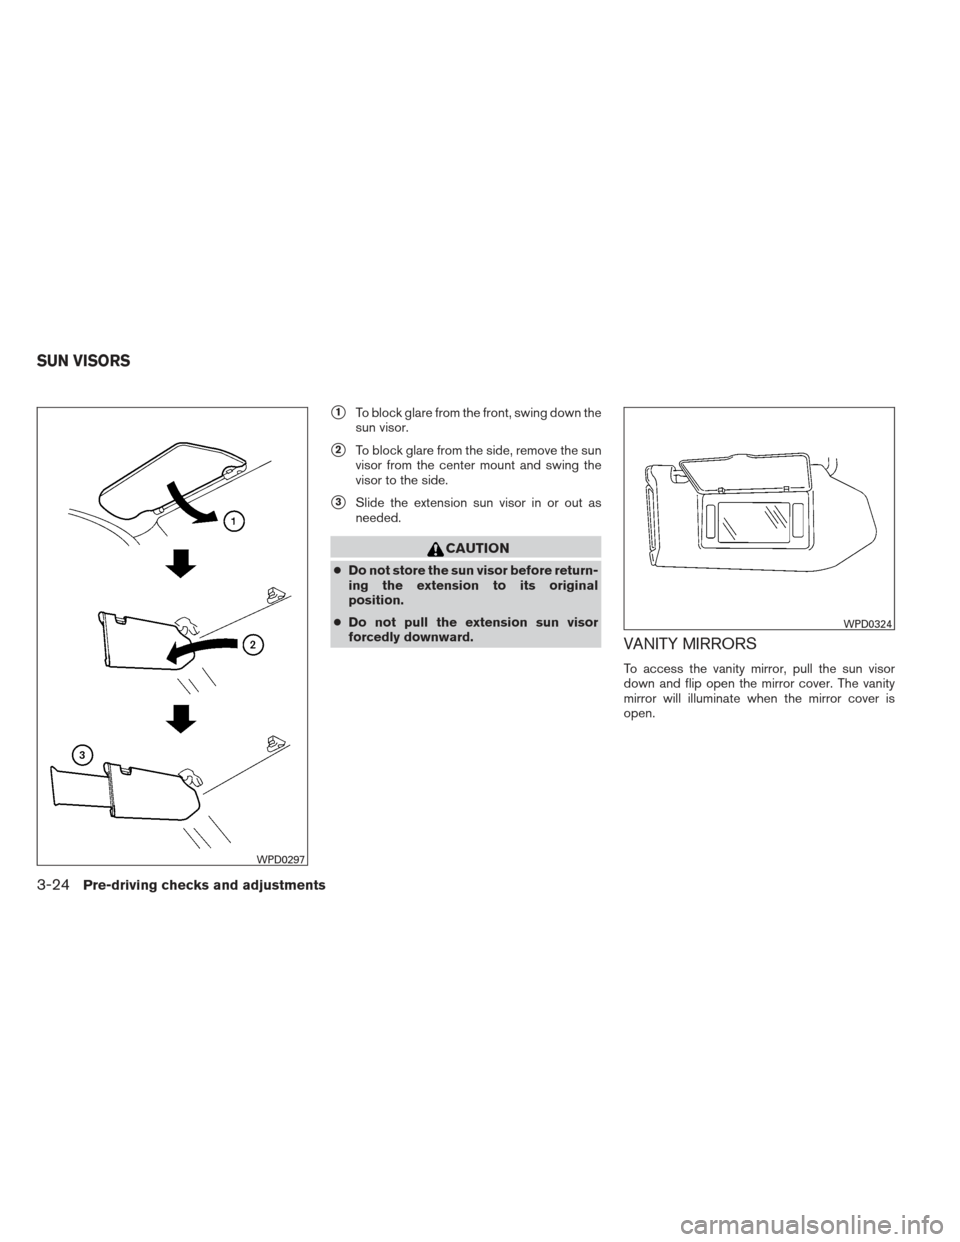 NISSAN MAXIMA 2013 A35 / 7.G Owners Manual 1To block glare from the front, swing down the sun visor. 2To block glare from the side, remove the sun visor from the center mount and swing the visor to the side. 3Slide the extension sun visor i